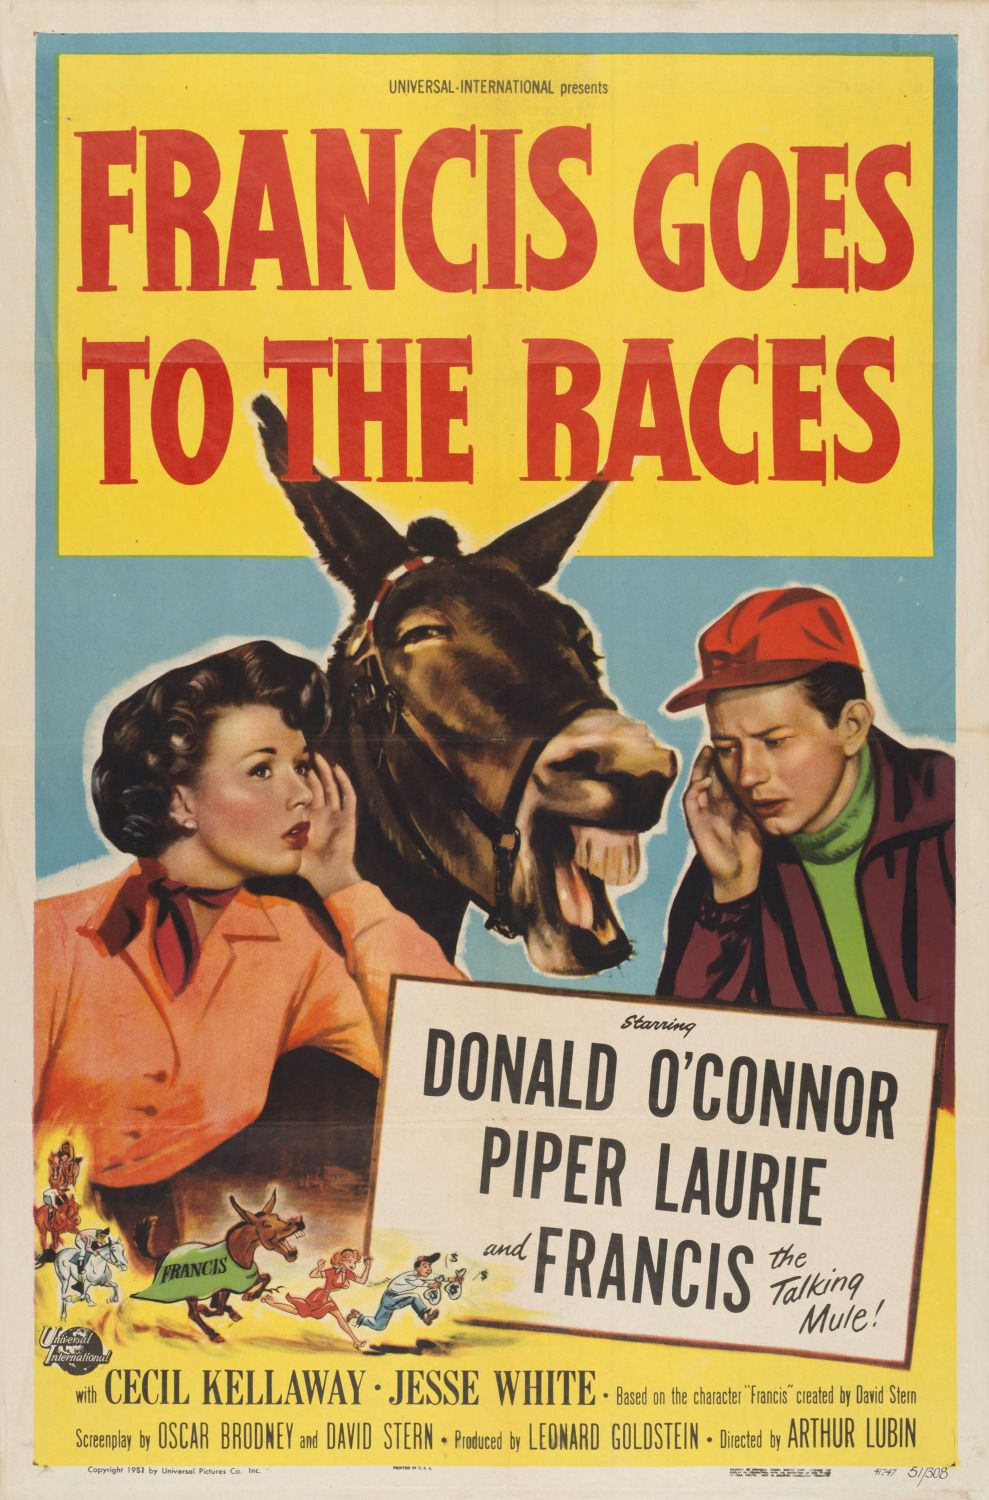 Francis goes to the Races - cult film poster 1951